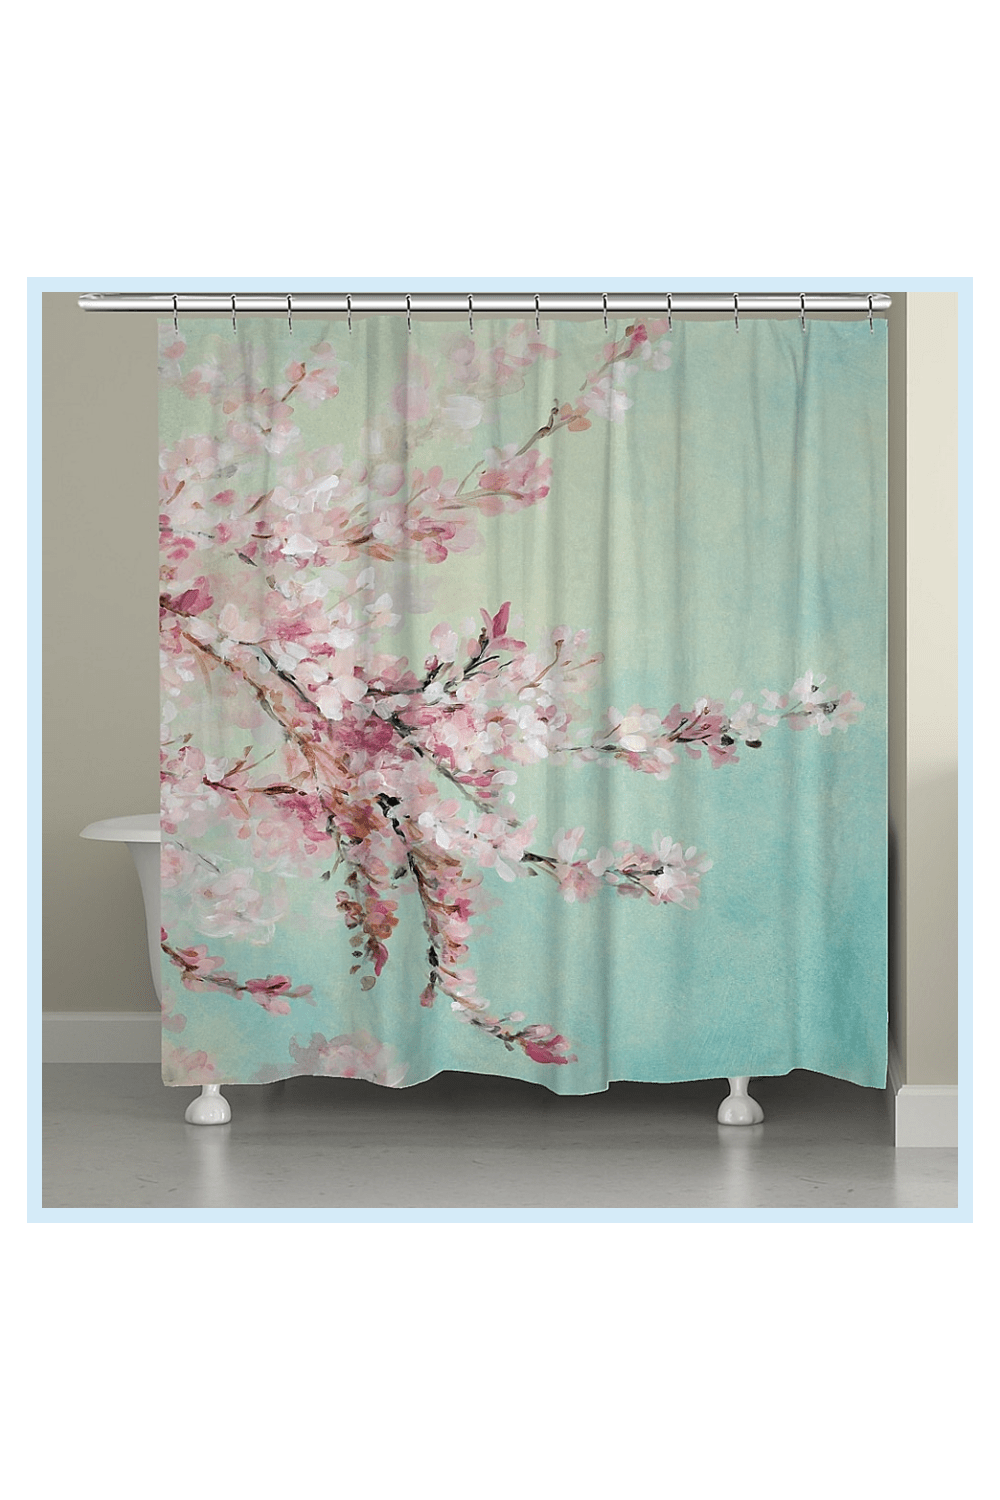 Laural Home Cherry Blossoms Shower Curtain In Blue Pink In 2020 Laural Home Cherry Blossom Decor Curtains